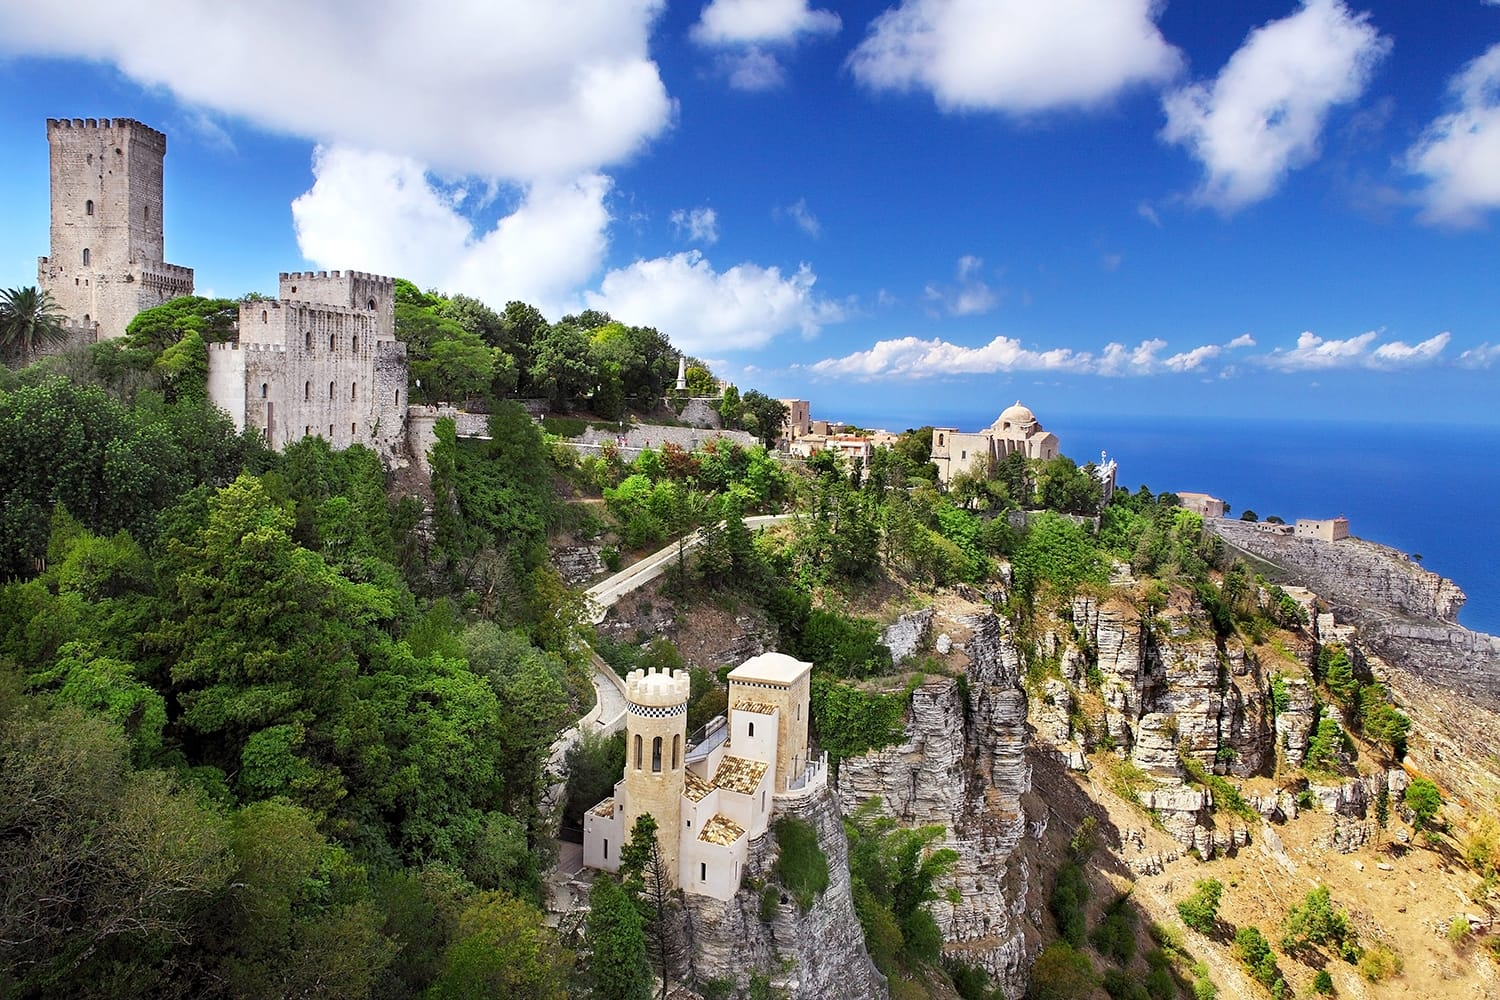 Mountain Fortress and Village of Erice on Sicily, Italy